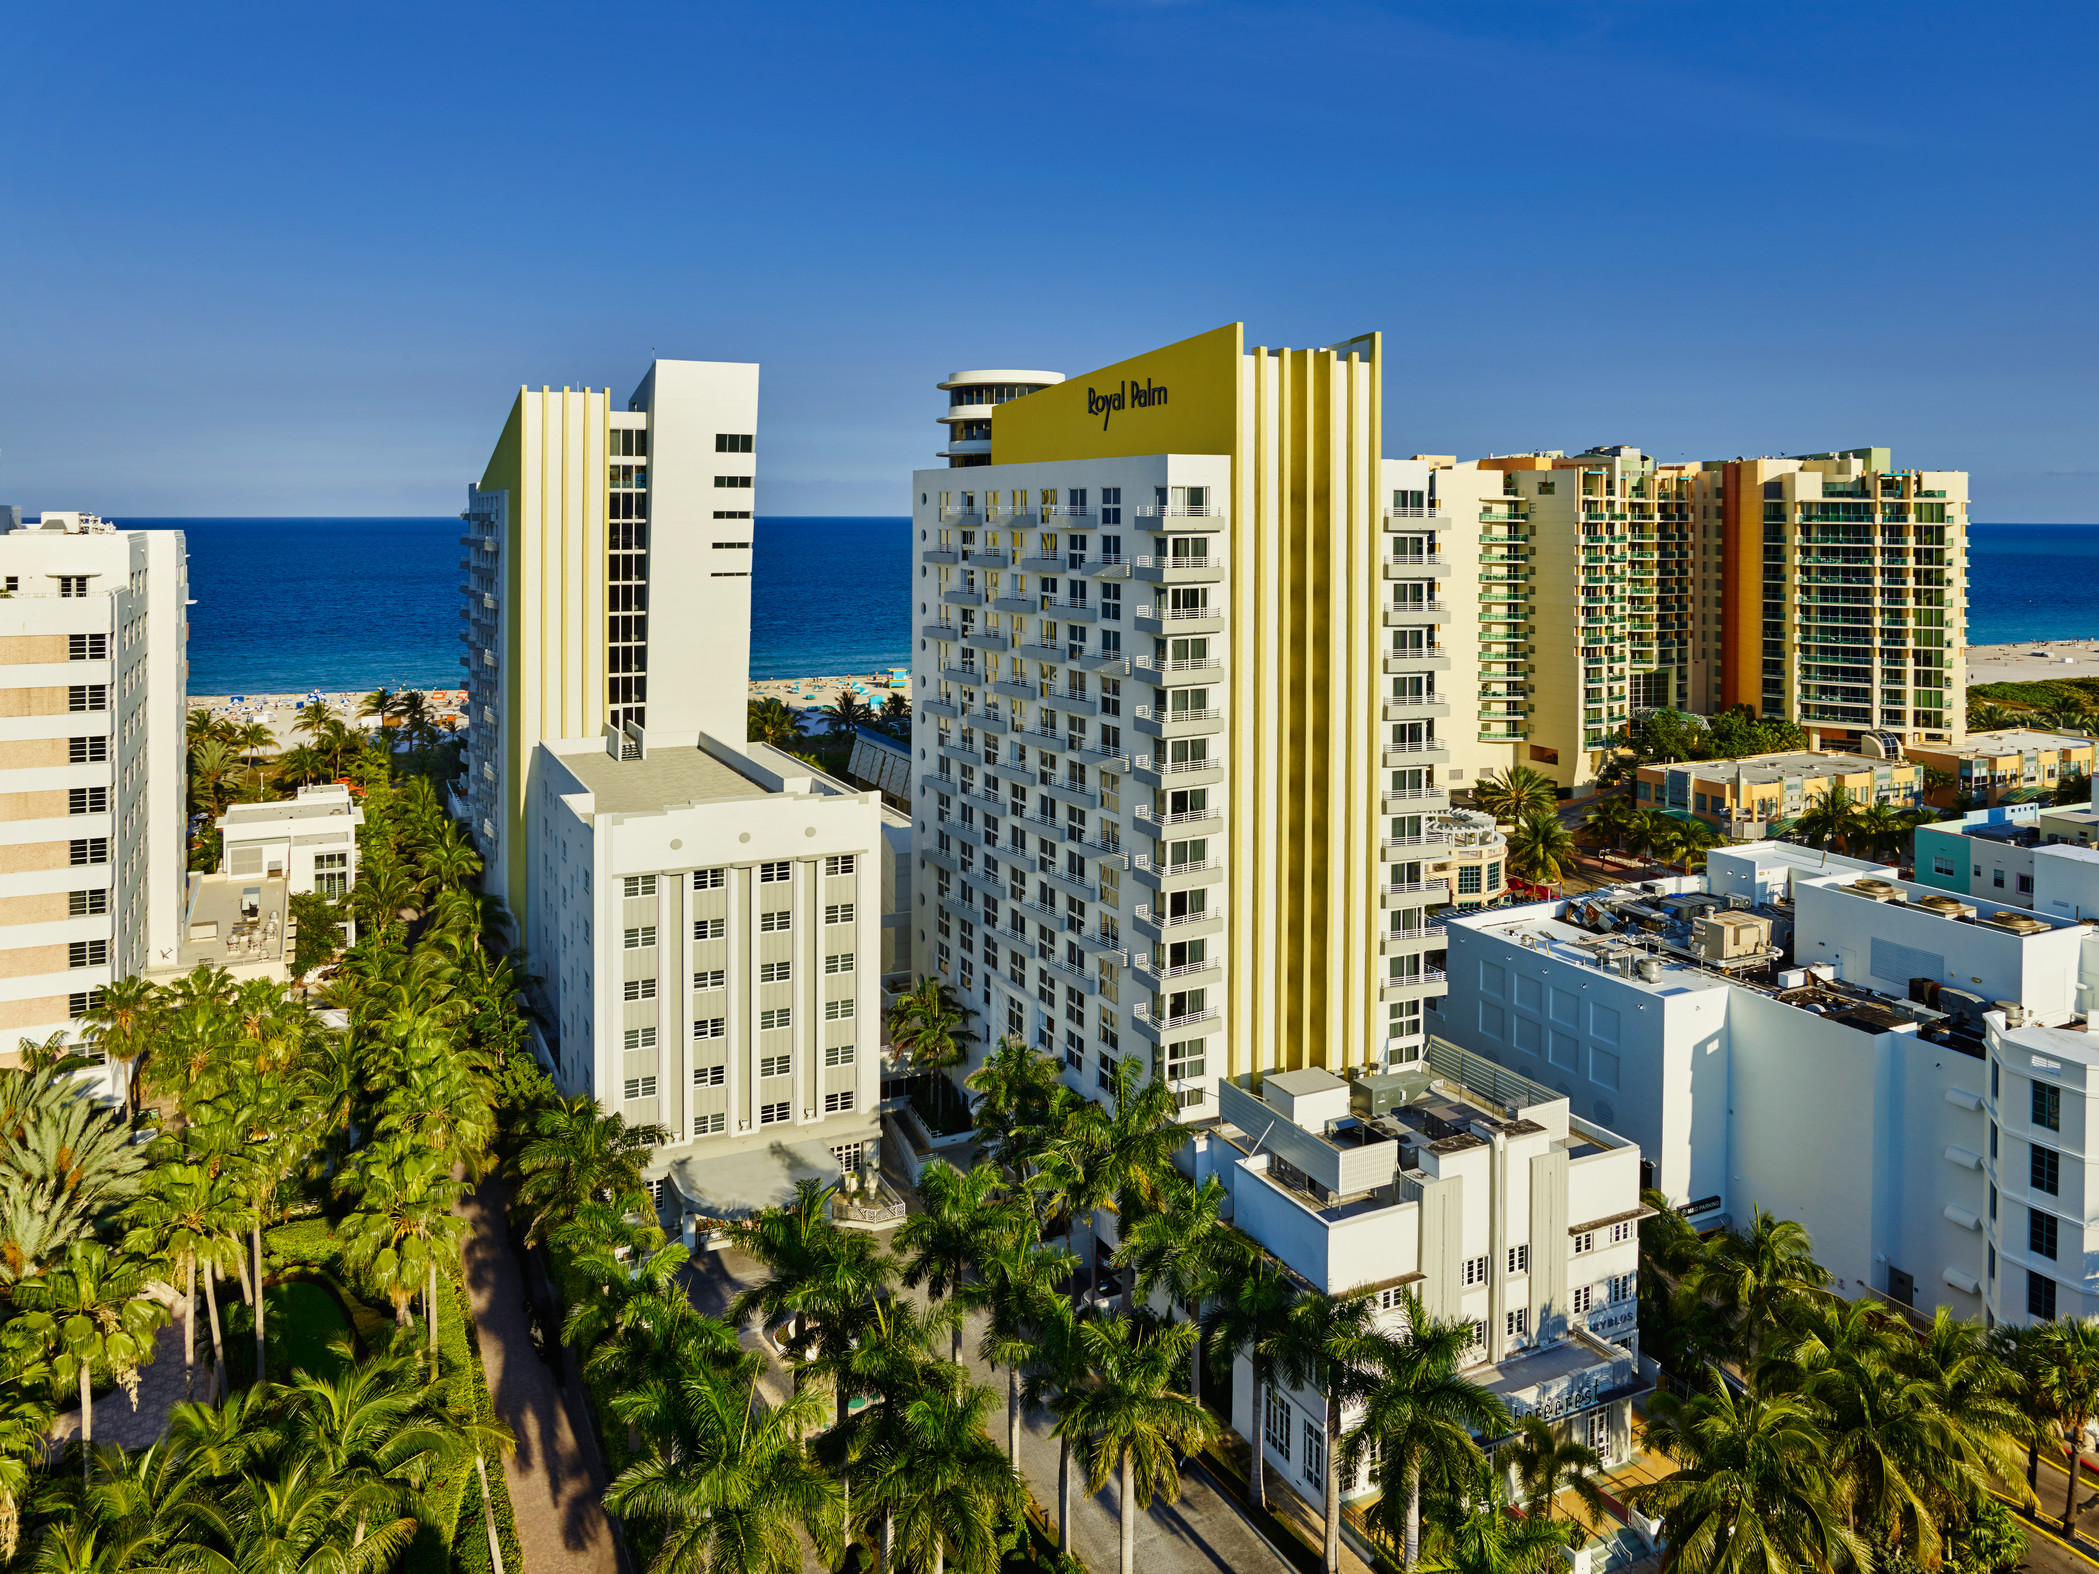 The Tribute portfolio is debuting on Thursday with its first featured hotel, the Royal Palm South Beach Miami.